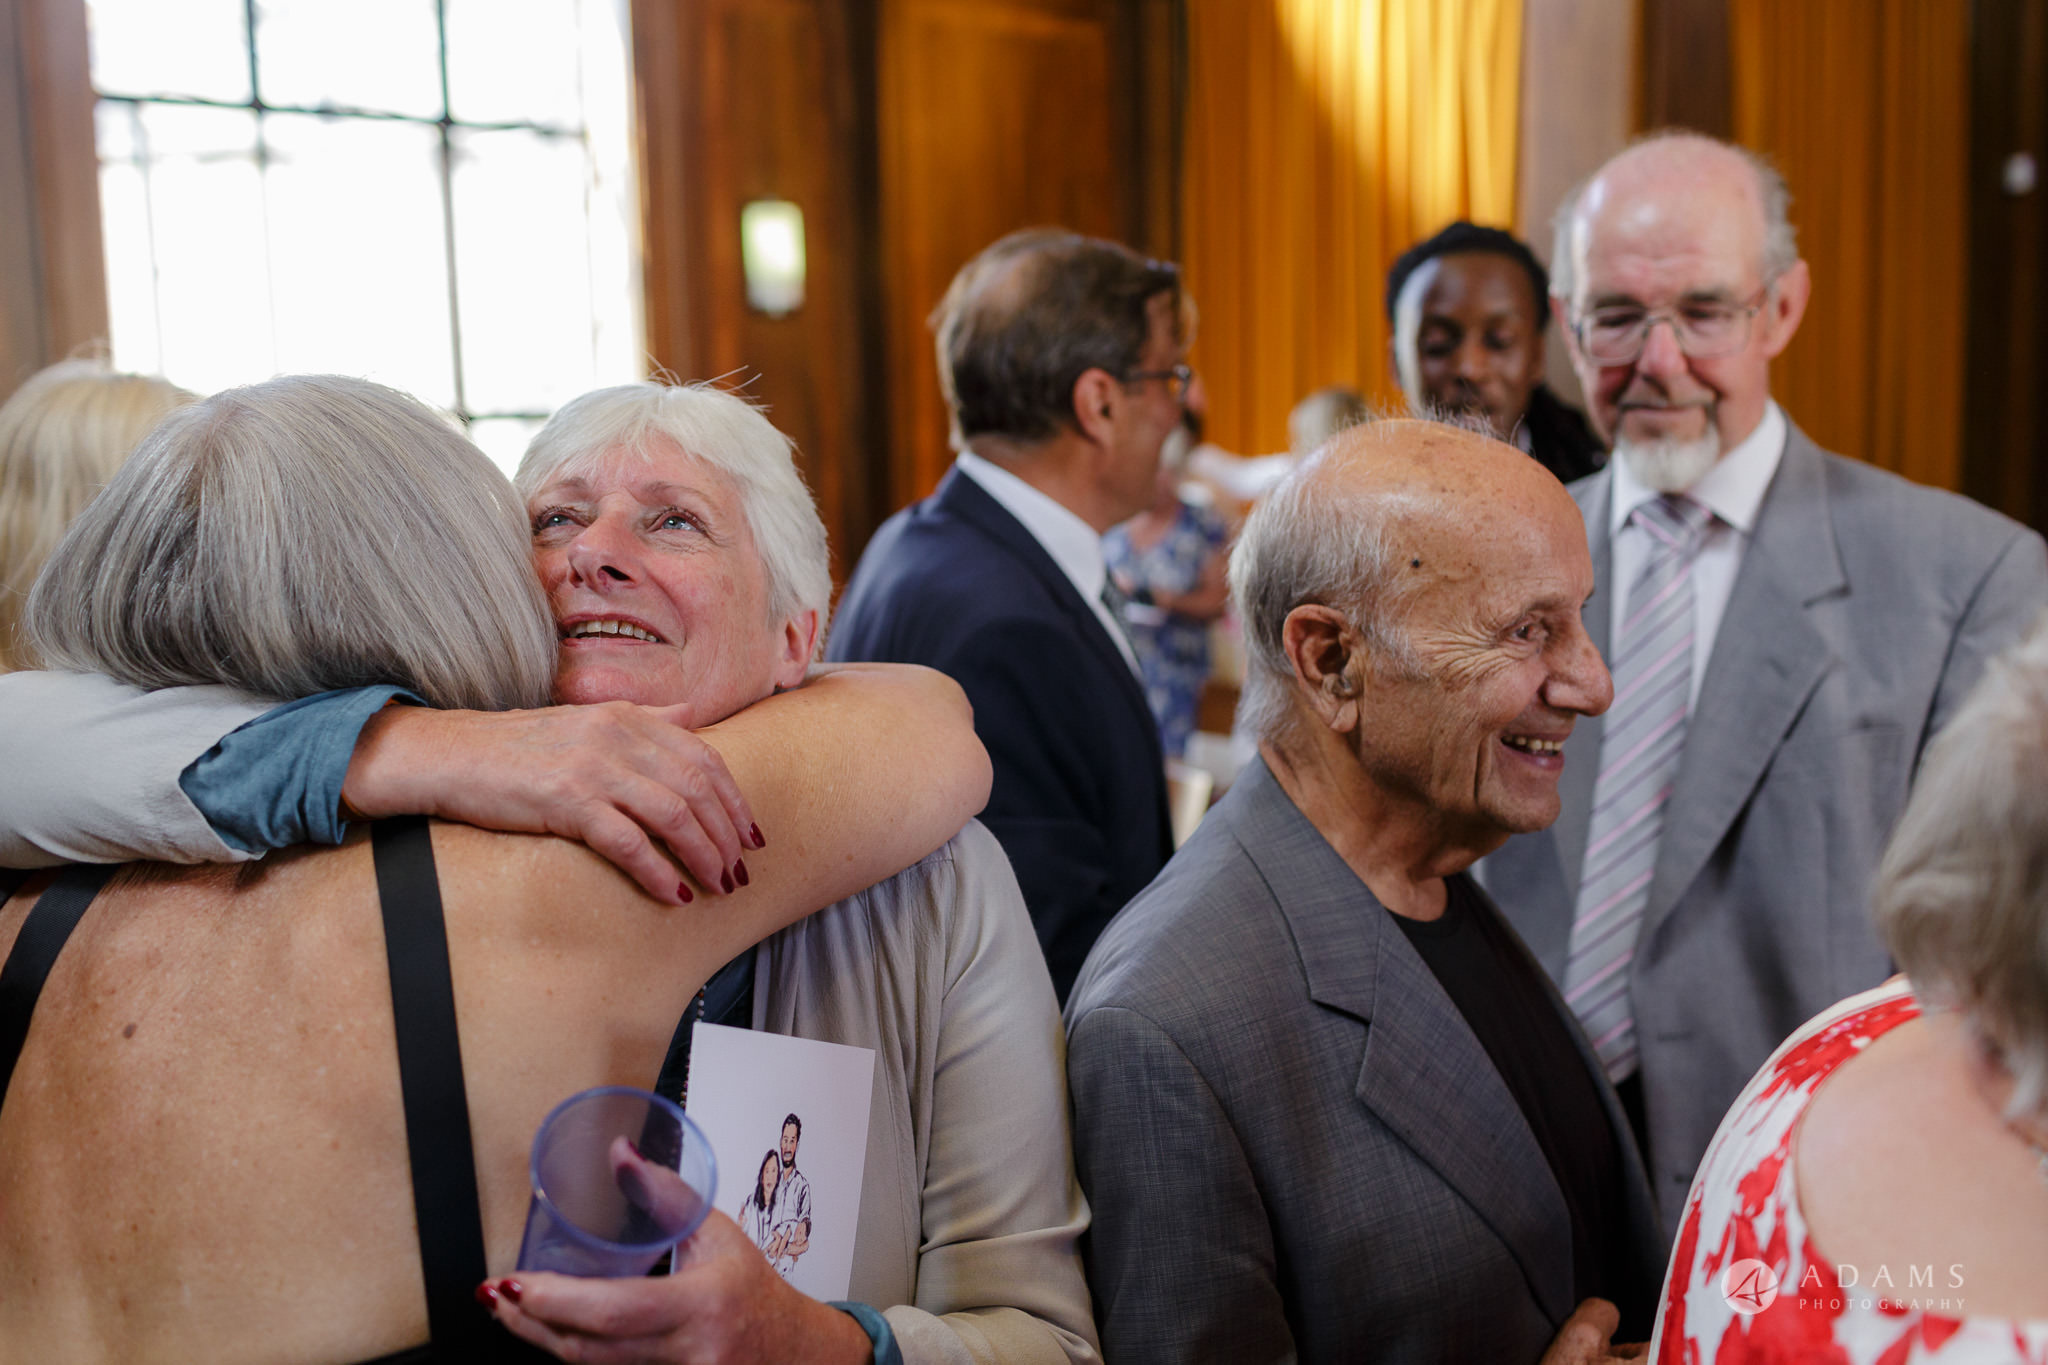 Clissold house wedding family hugs each other